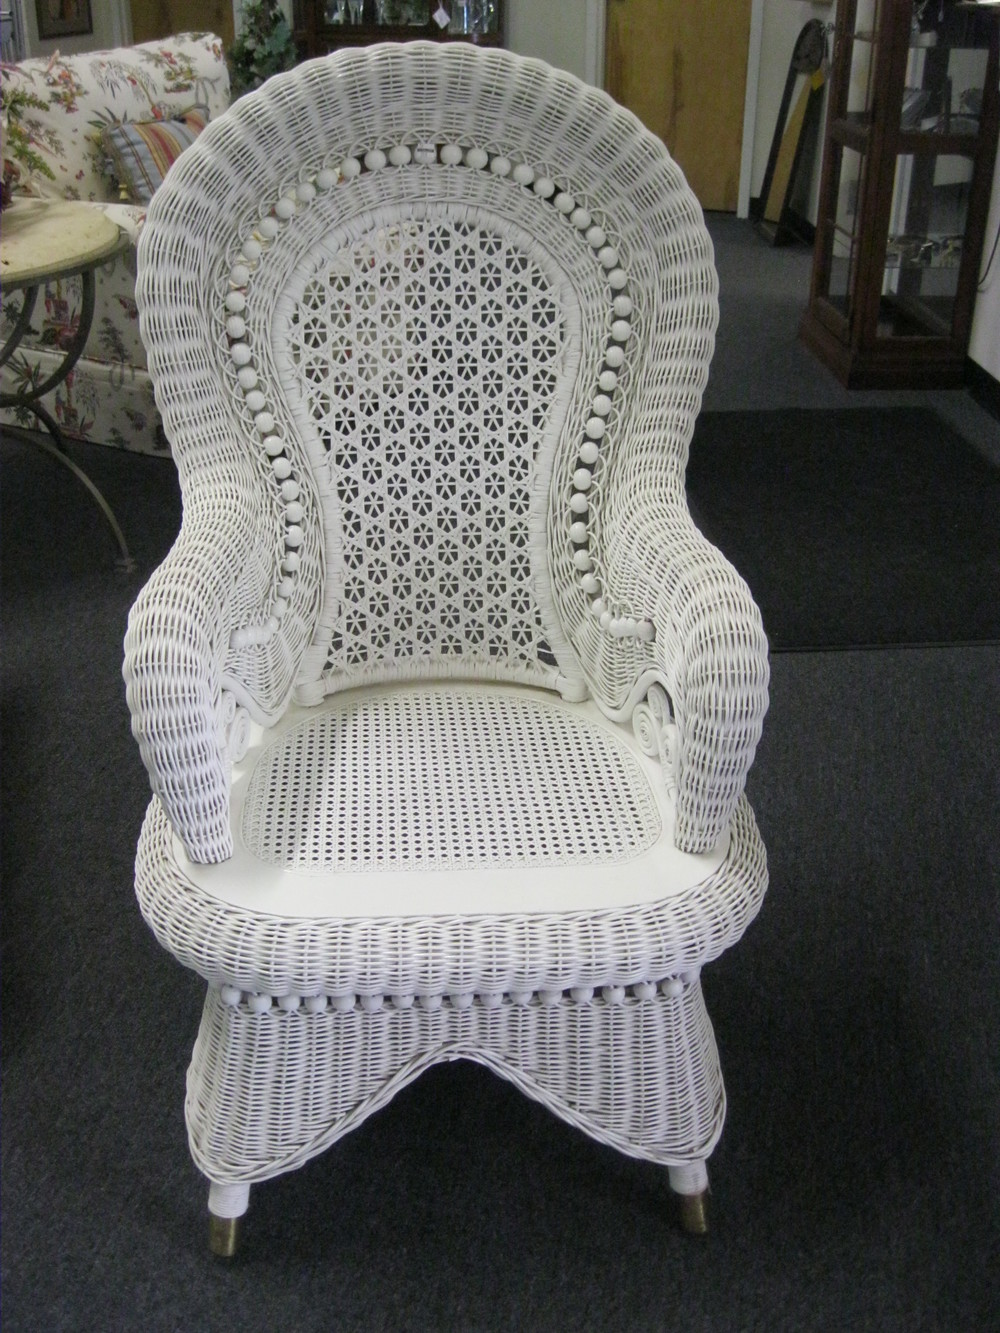 White Wicker Victorian style rolled arm chair